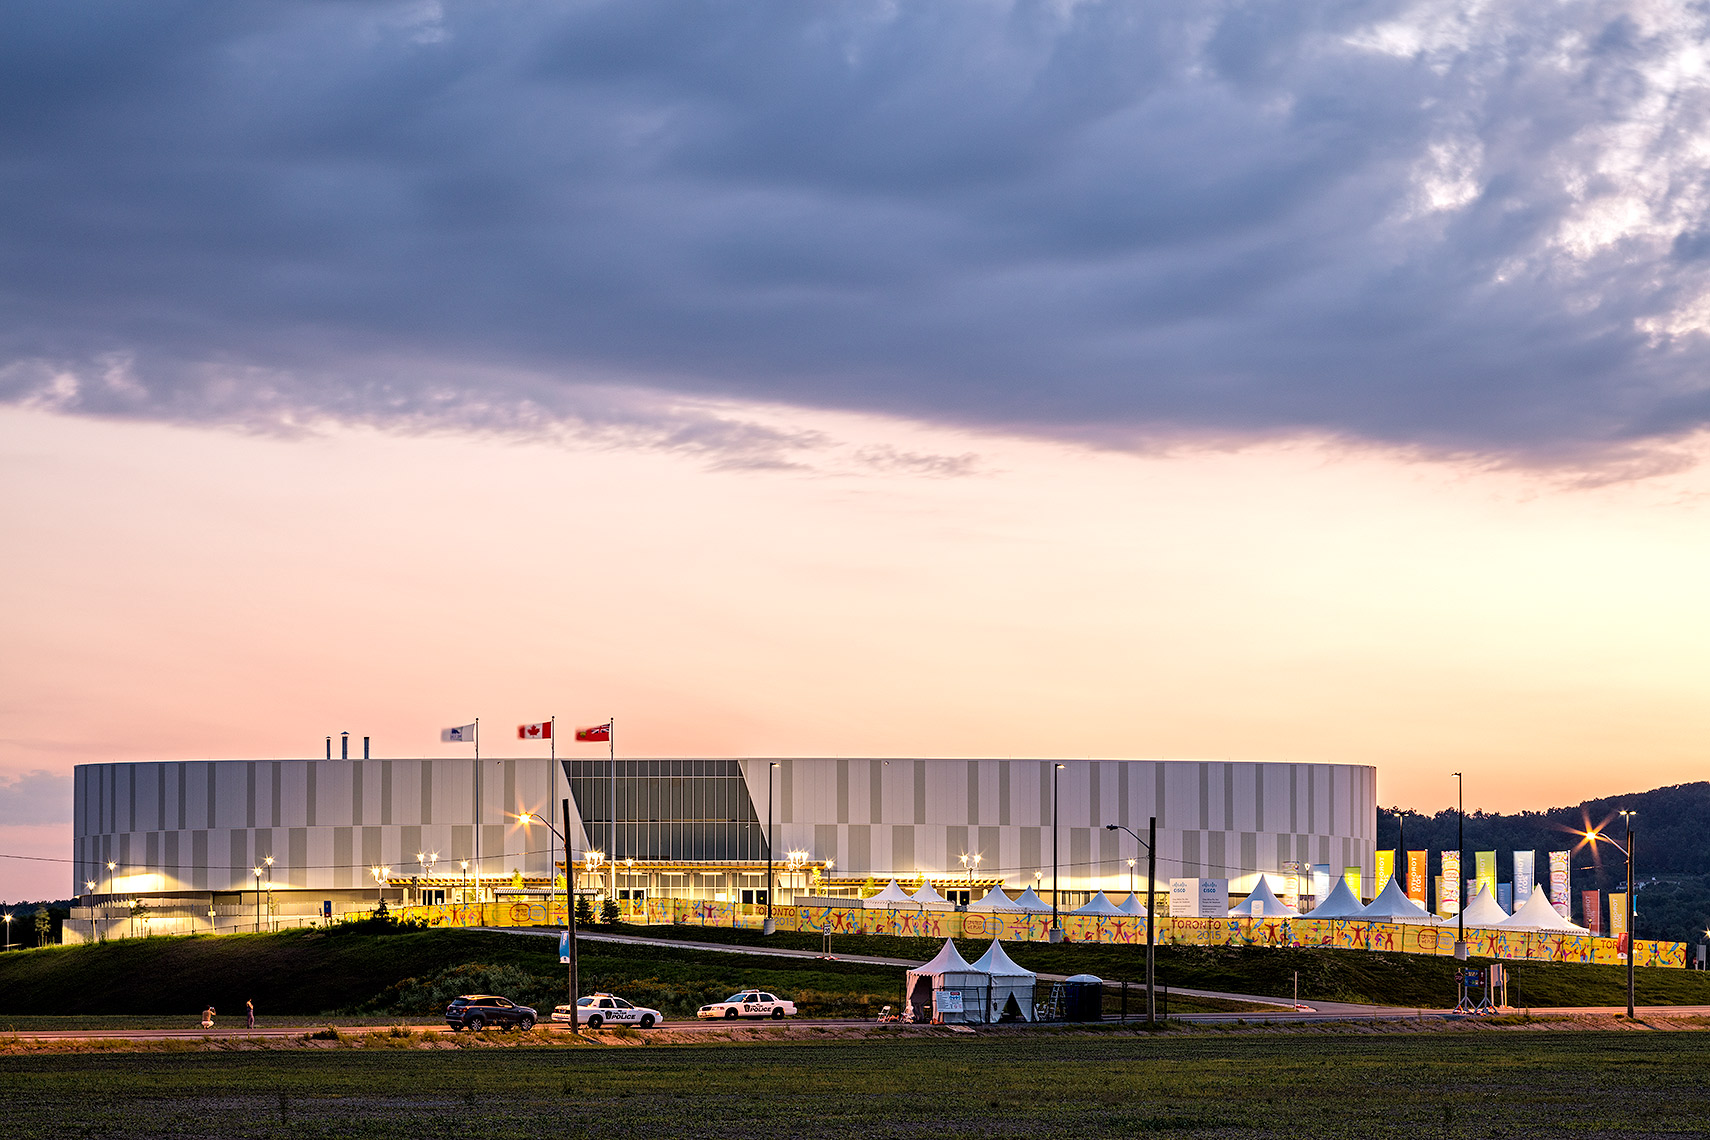 Mattamy National Cycling Centre, Peter A. Sellar Architectural Photographer